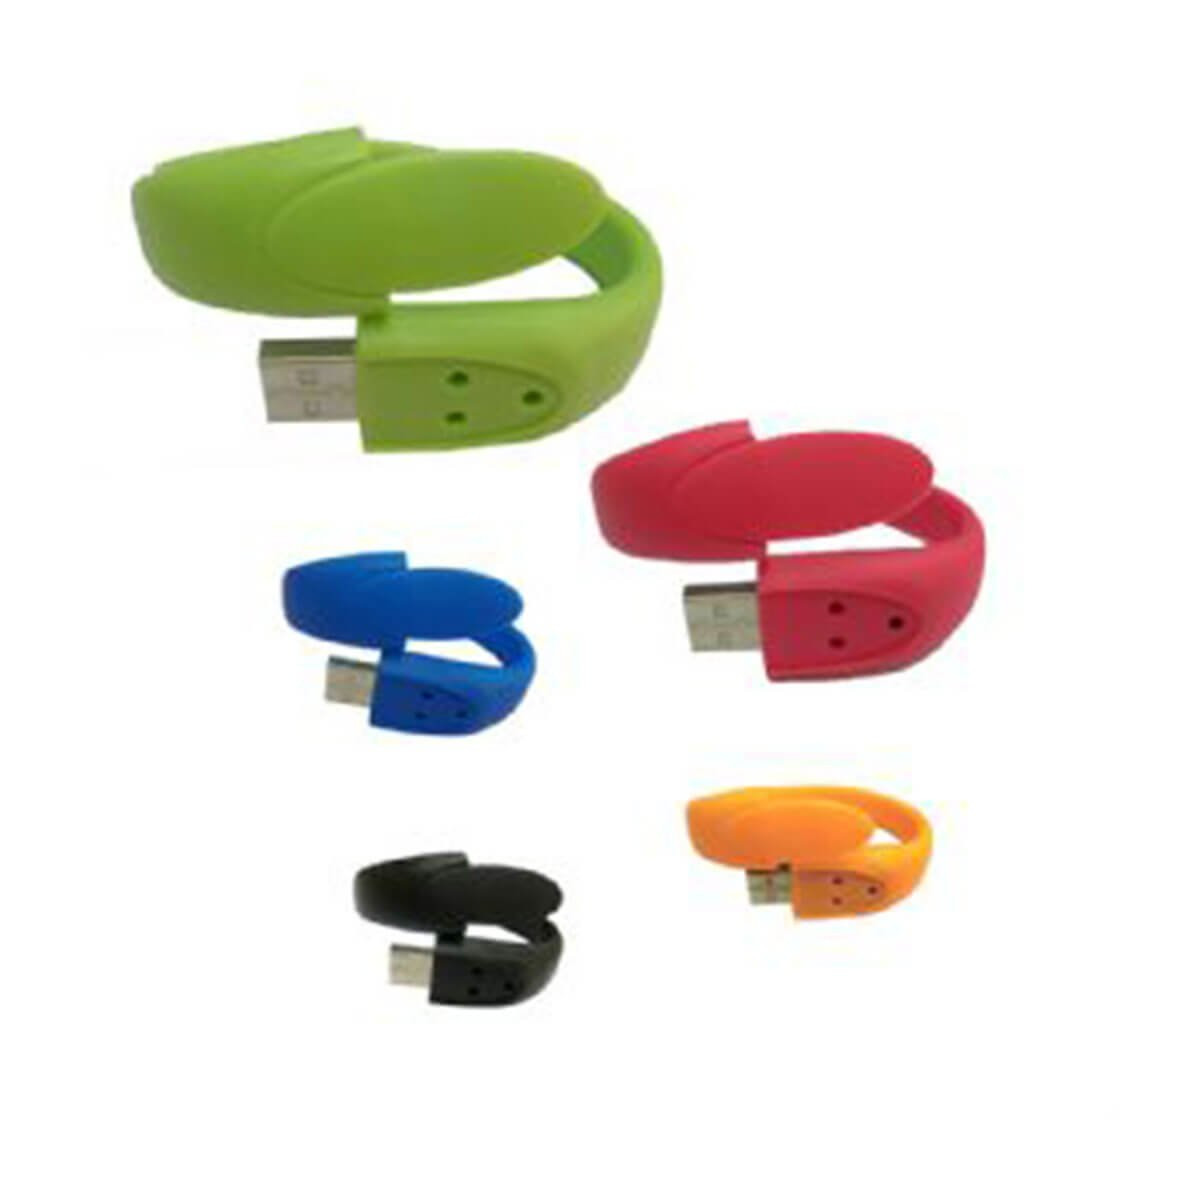 Wristband USB Flash Drive-Black, Blue, Red, Green, Orange